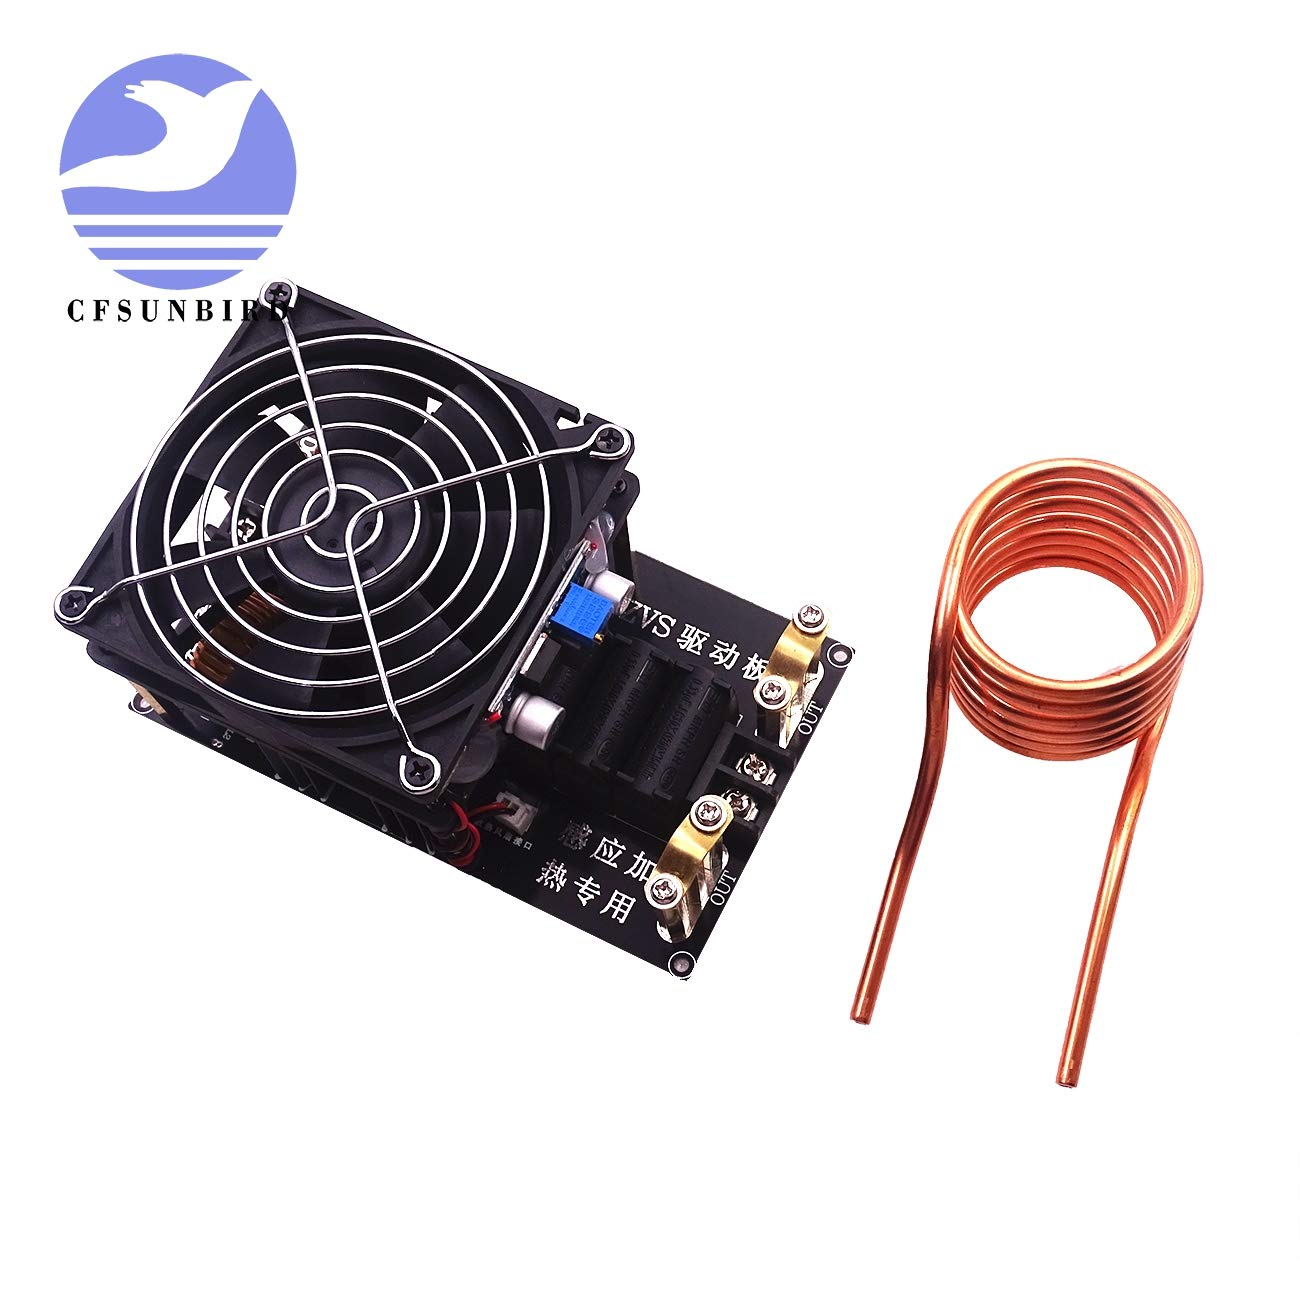 1000W 20A ZVS Induction Heating Machine Cooling Fan PCB Copper Tube 12-36V with Brass Coil